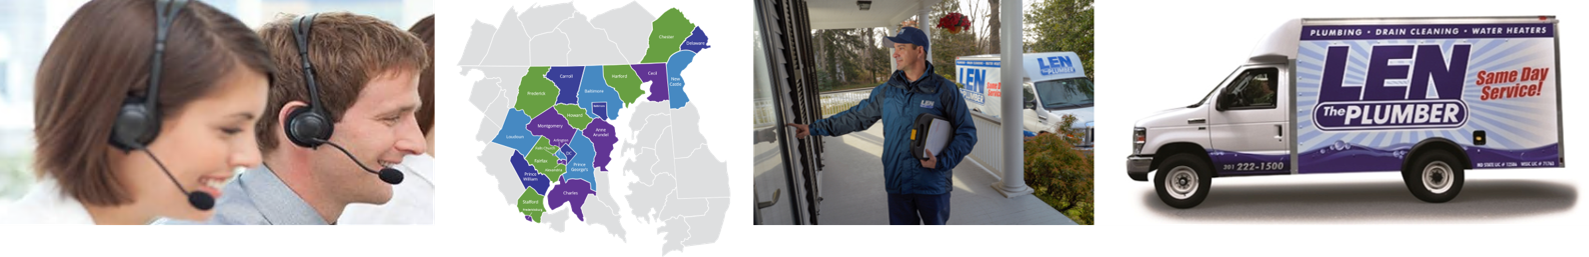 Collage of images. From left to right: sales representatives smiling and speaking on the phone, a map of Len The Plumber's service area, a Len The Plumber technician ringing a doorbell, and a Len The Plumber truck on a white background.